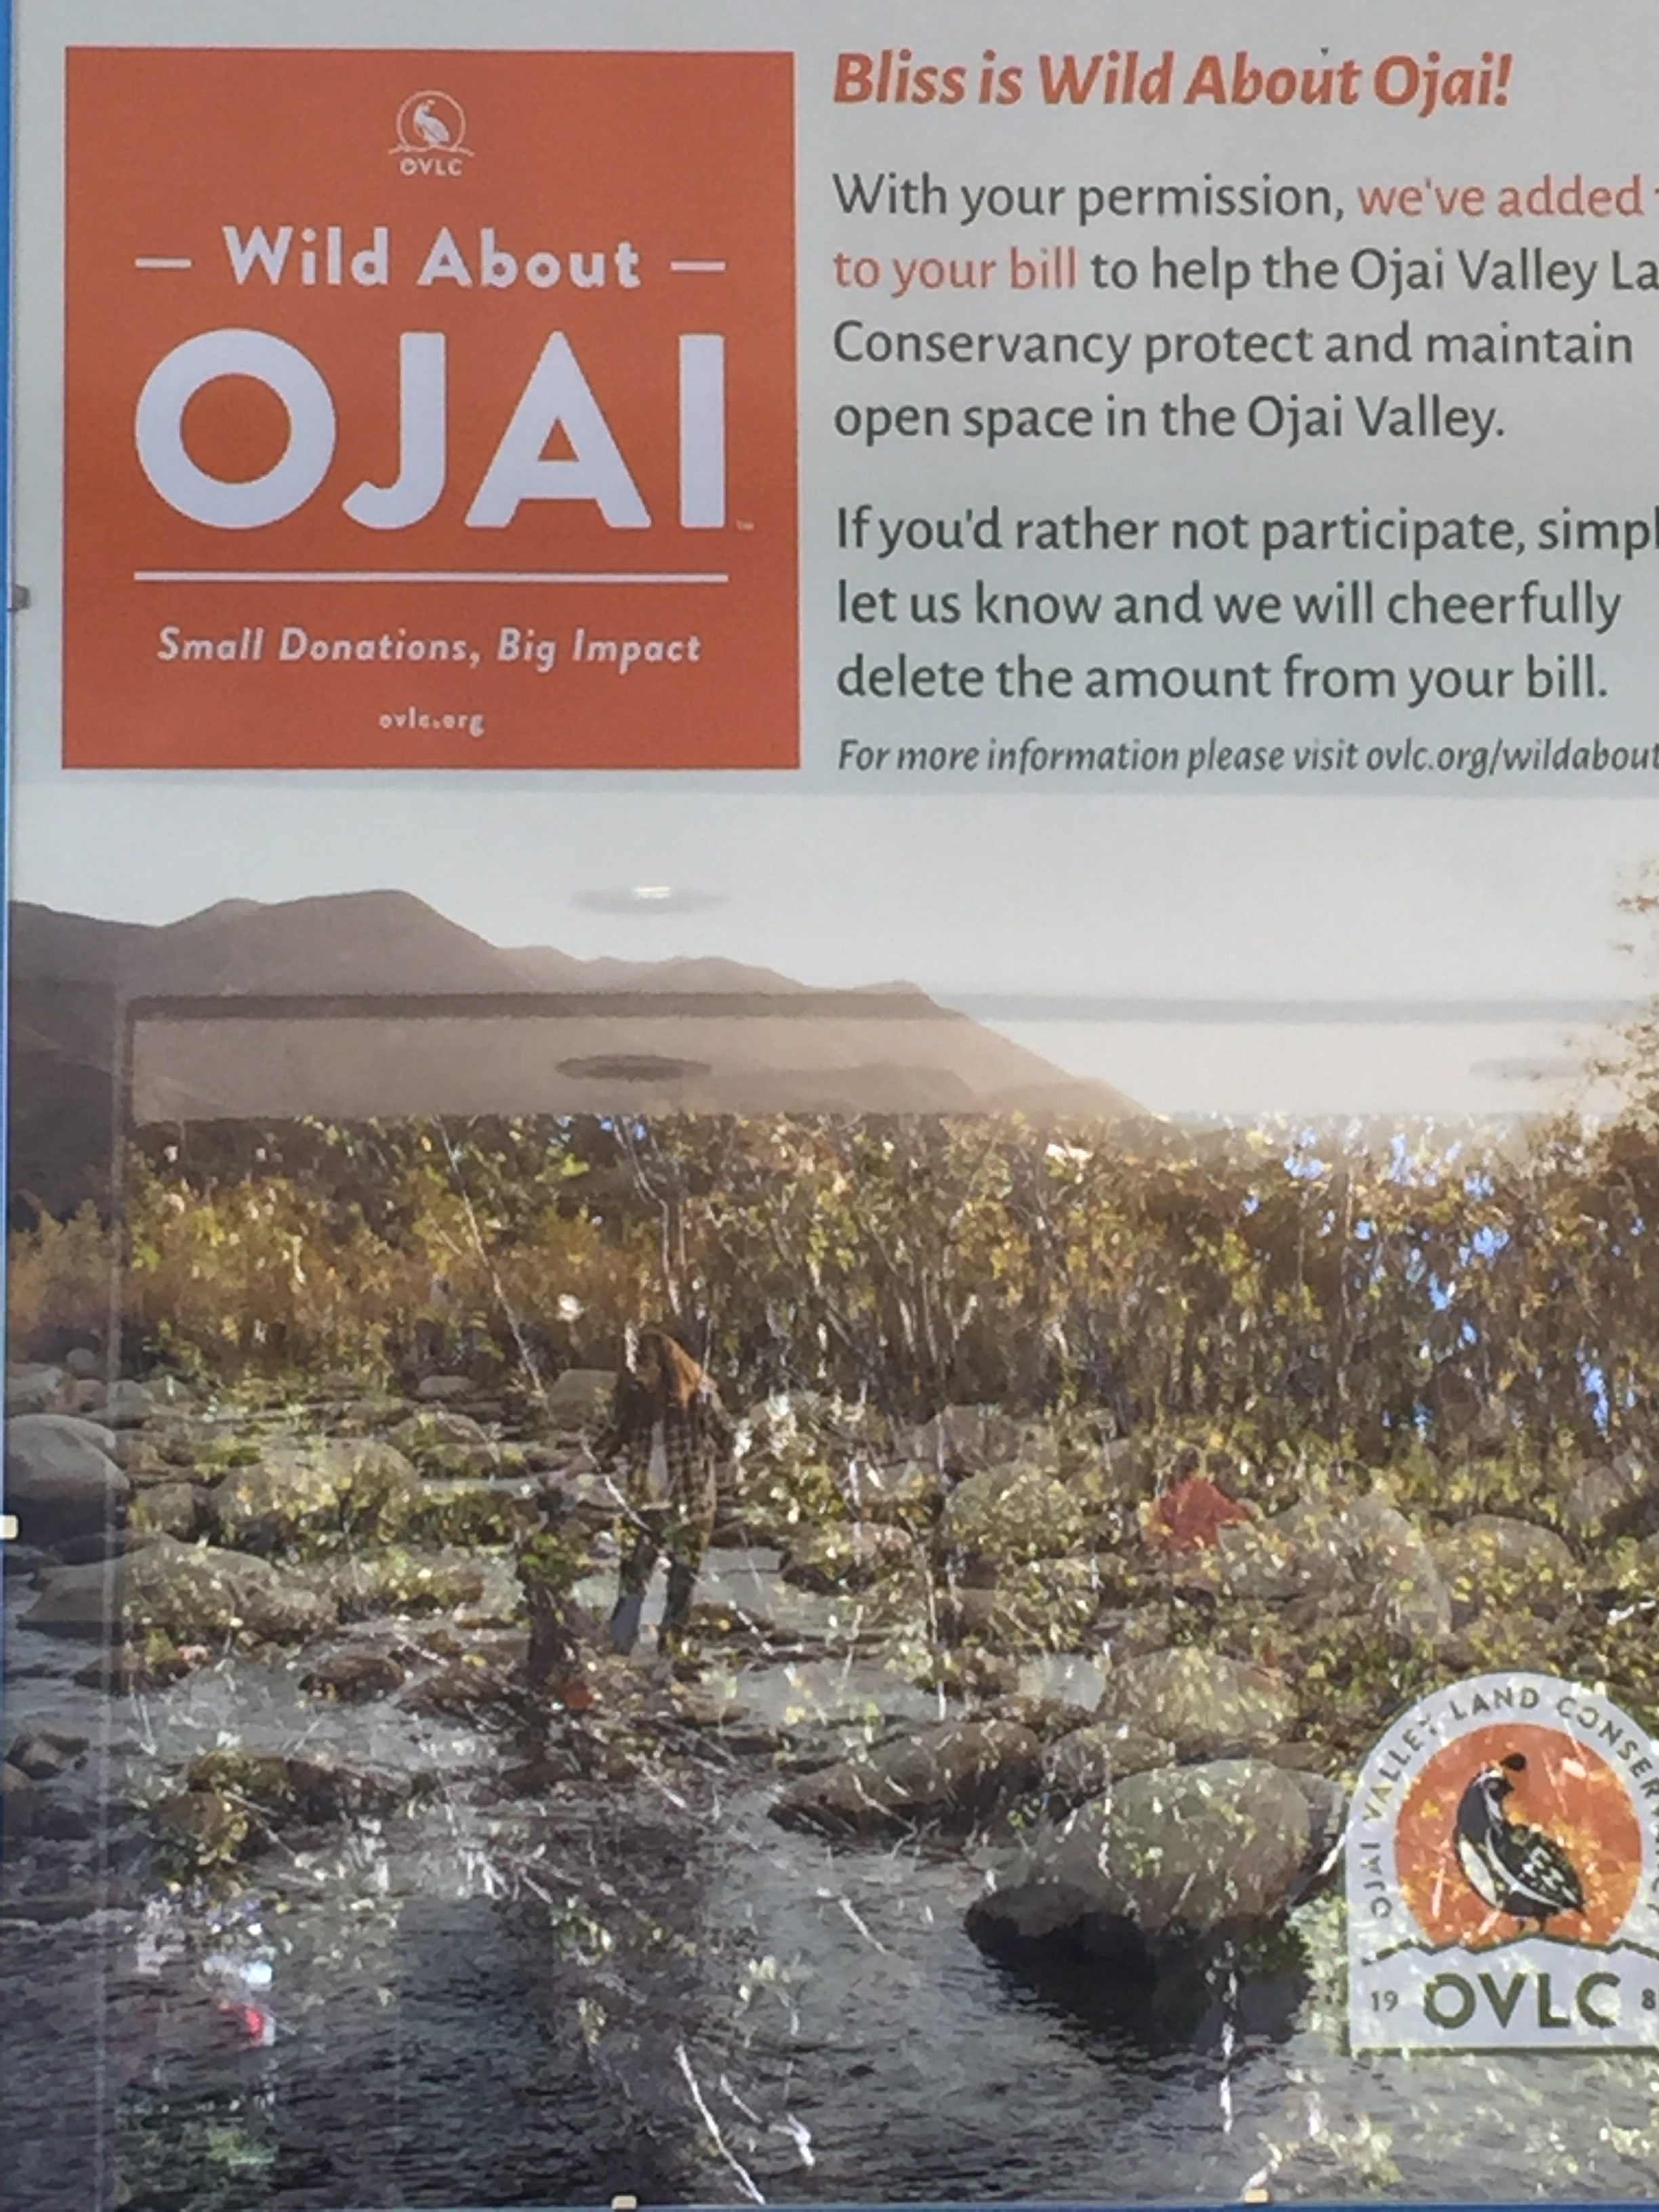 ojai donation at bliss